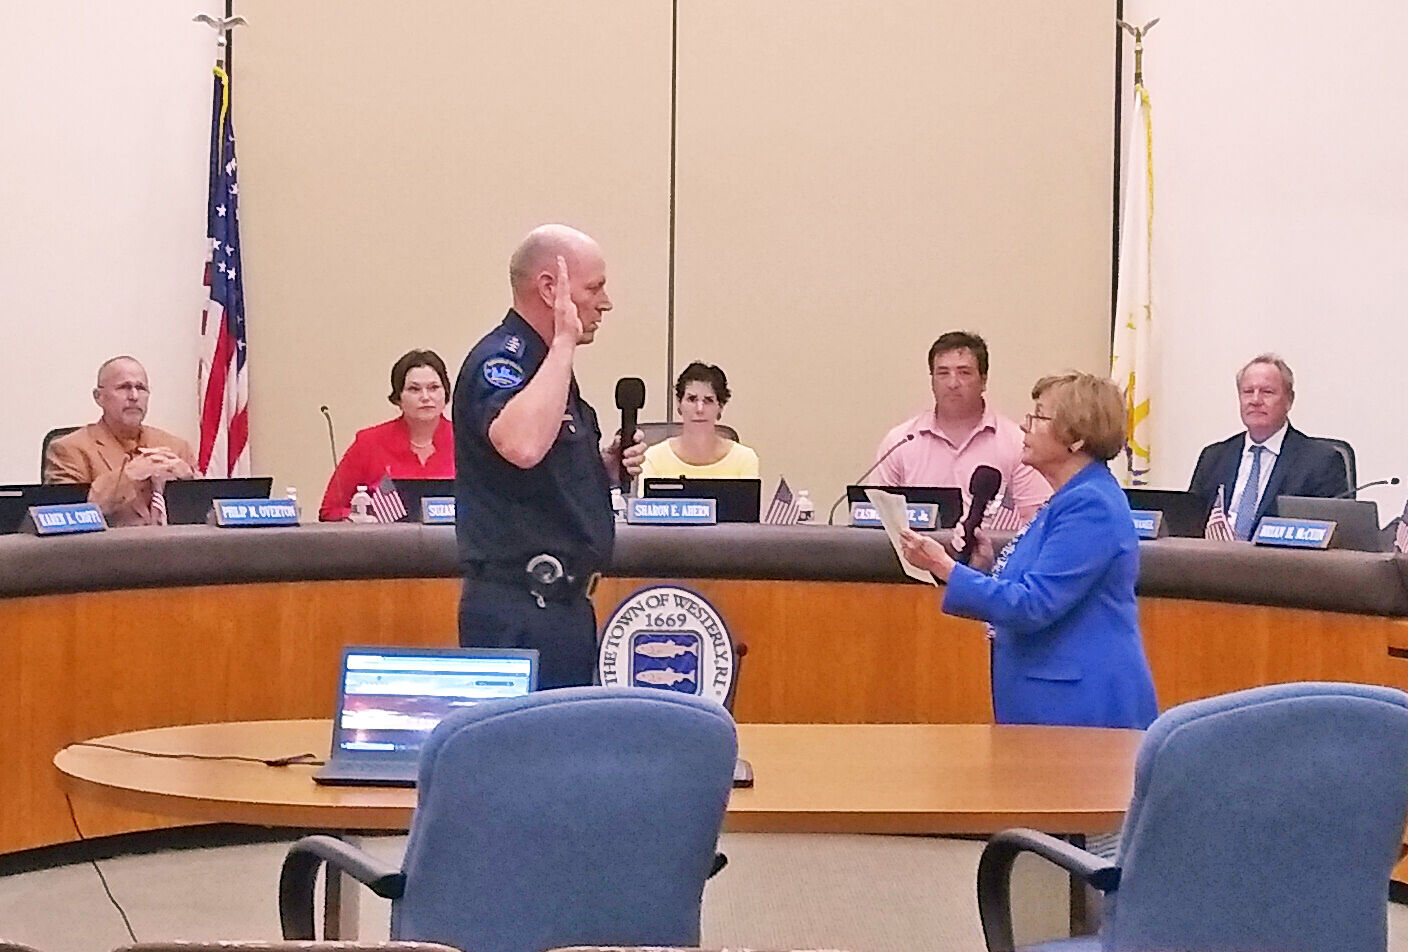 Lacey sworn in as acting town manager; Rooney recalls his time fondly